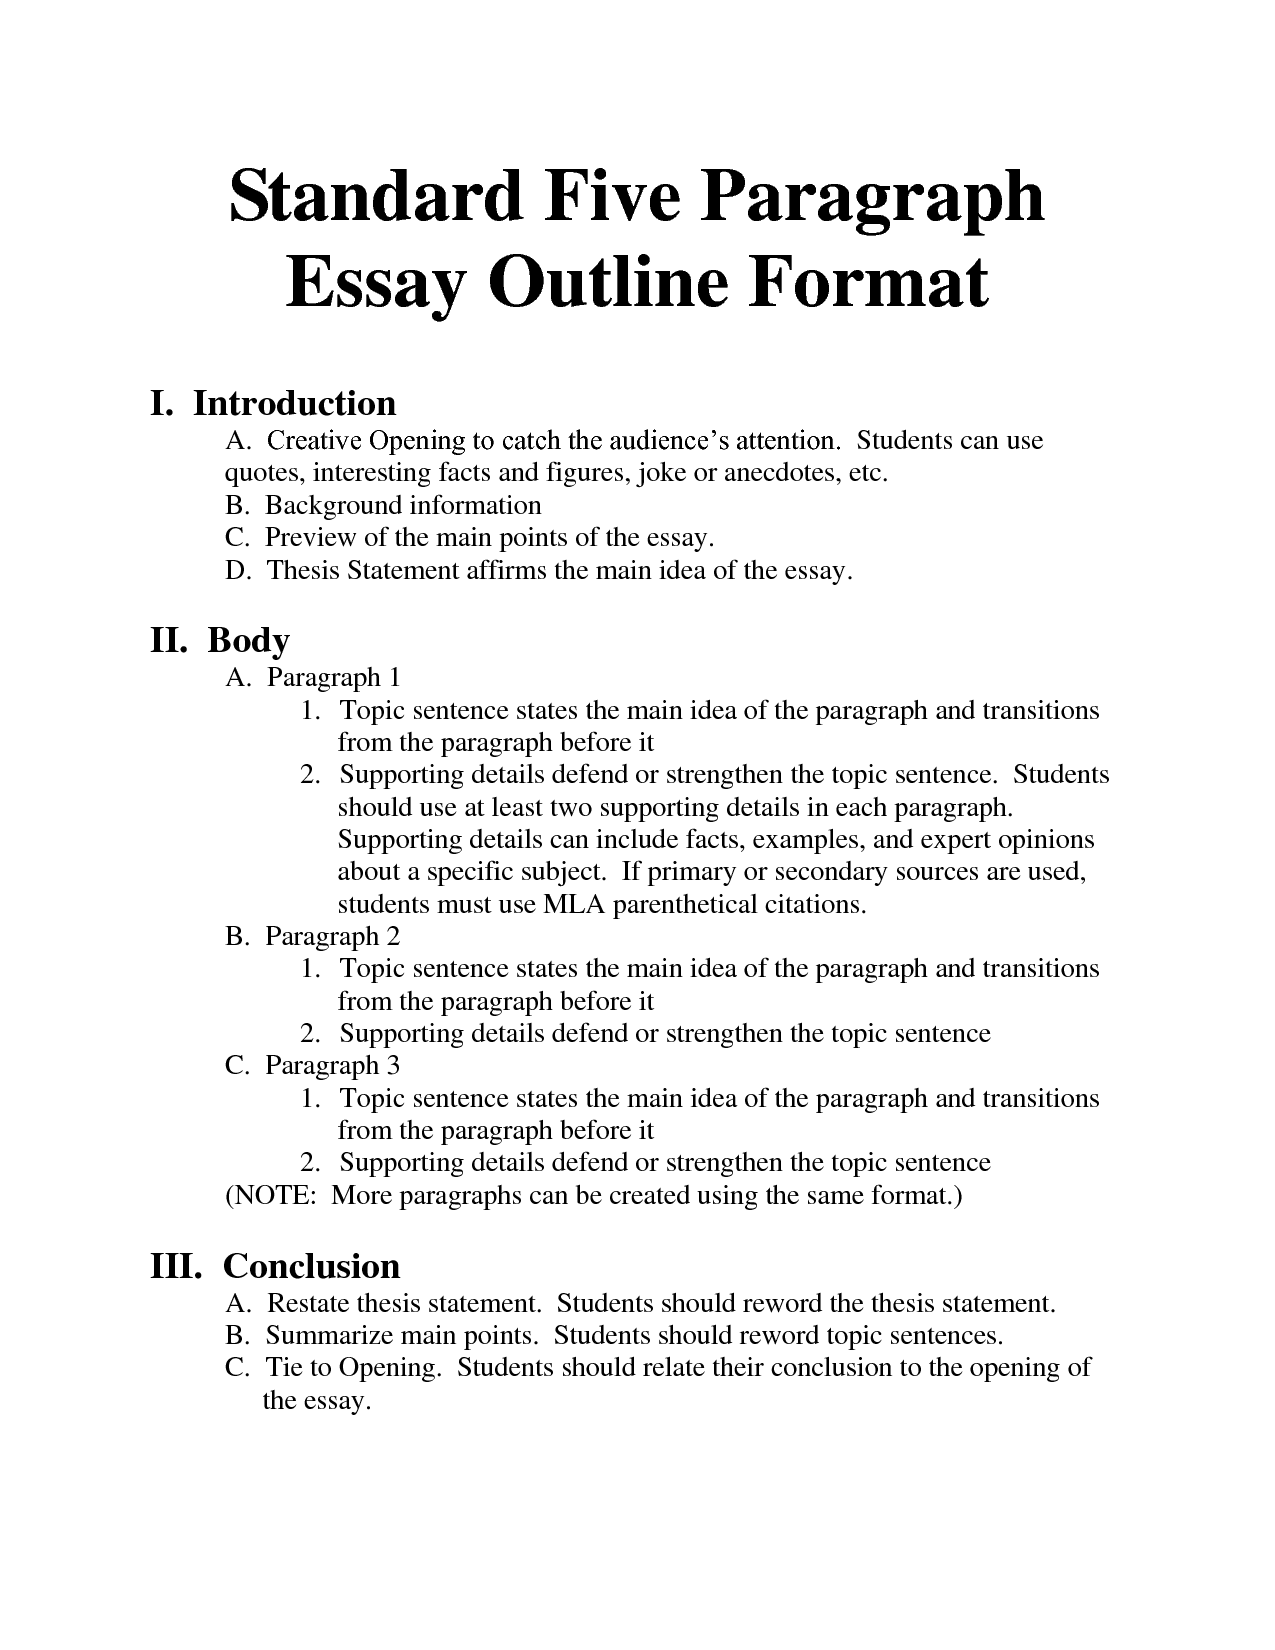 When writing an essay, what is the focus of a paragraph mean?